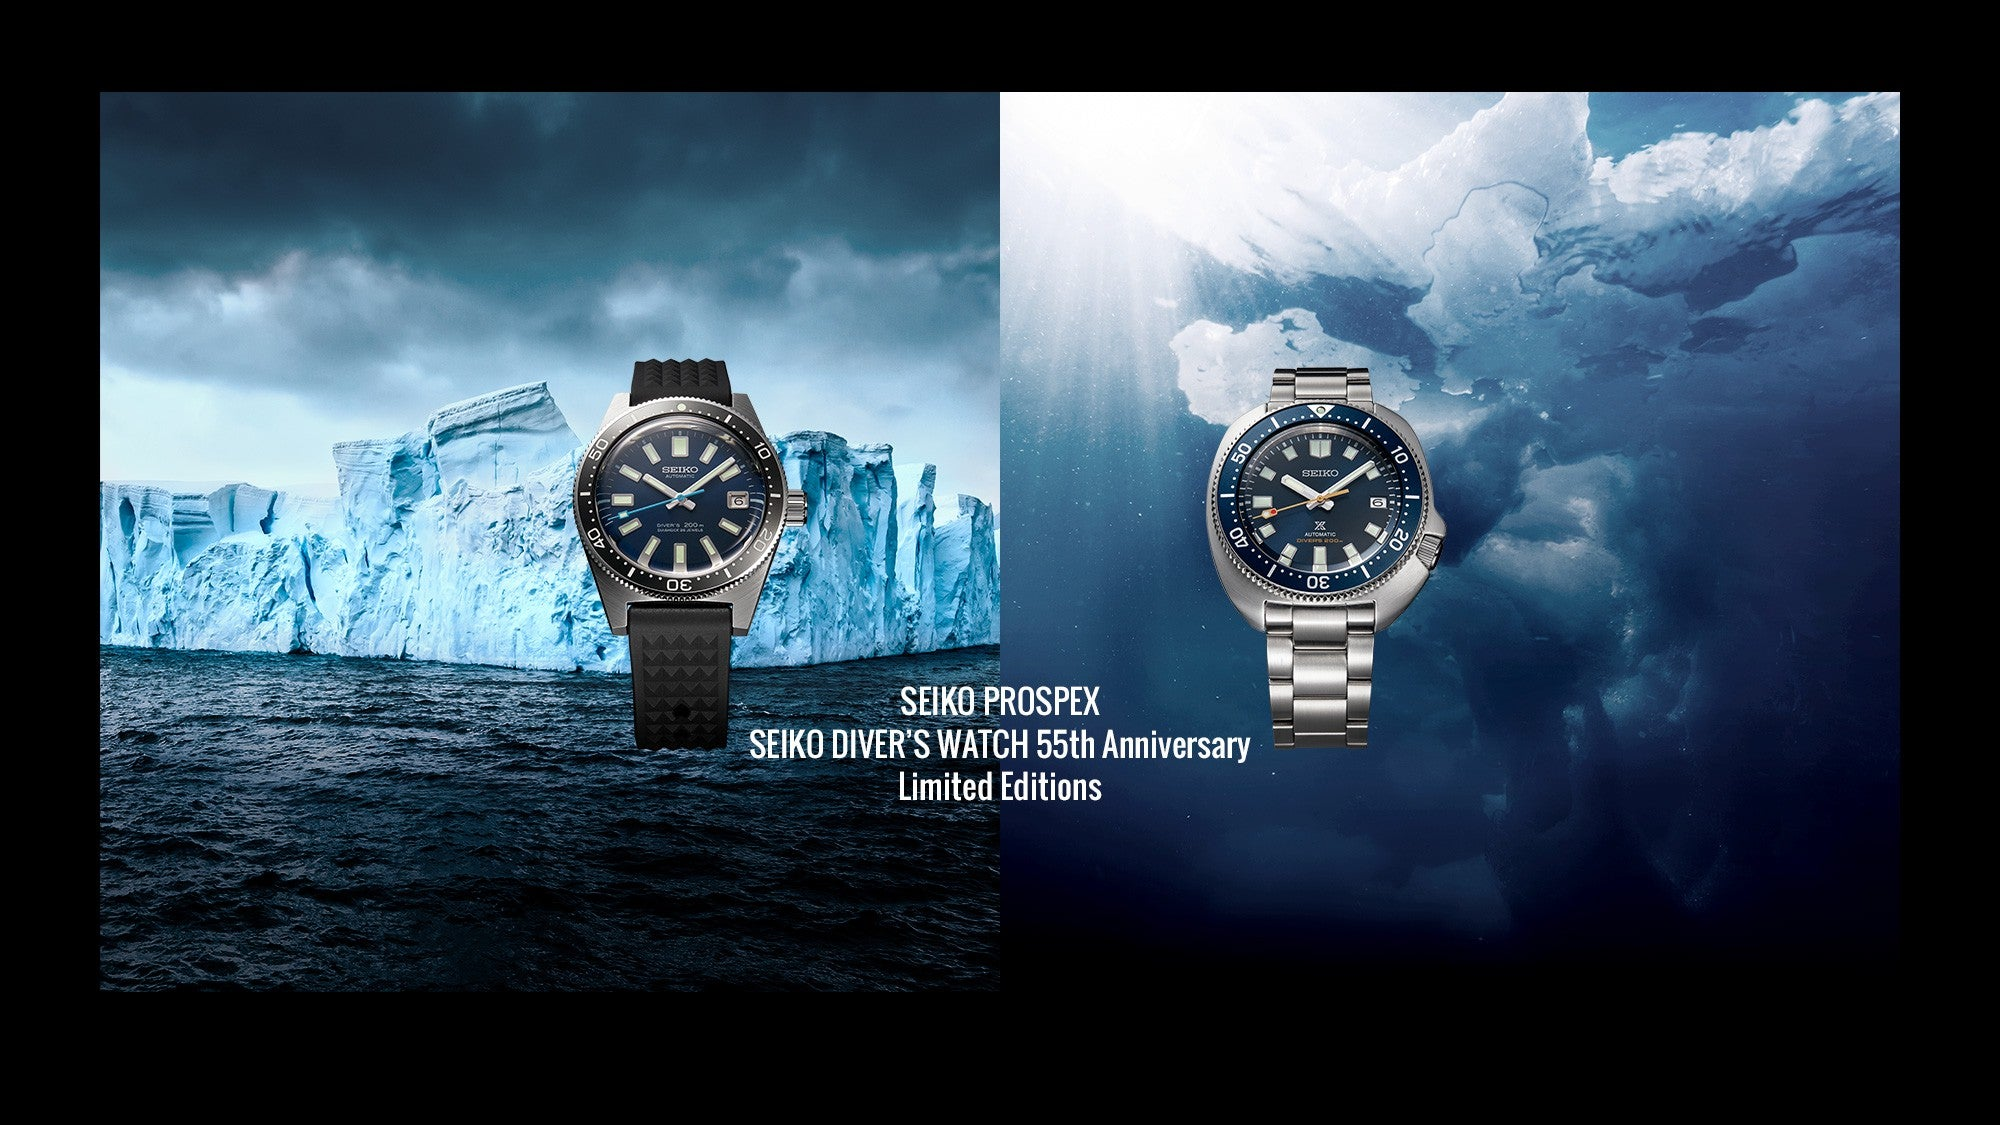 Seiko 55th Anniversary Second Collection